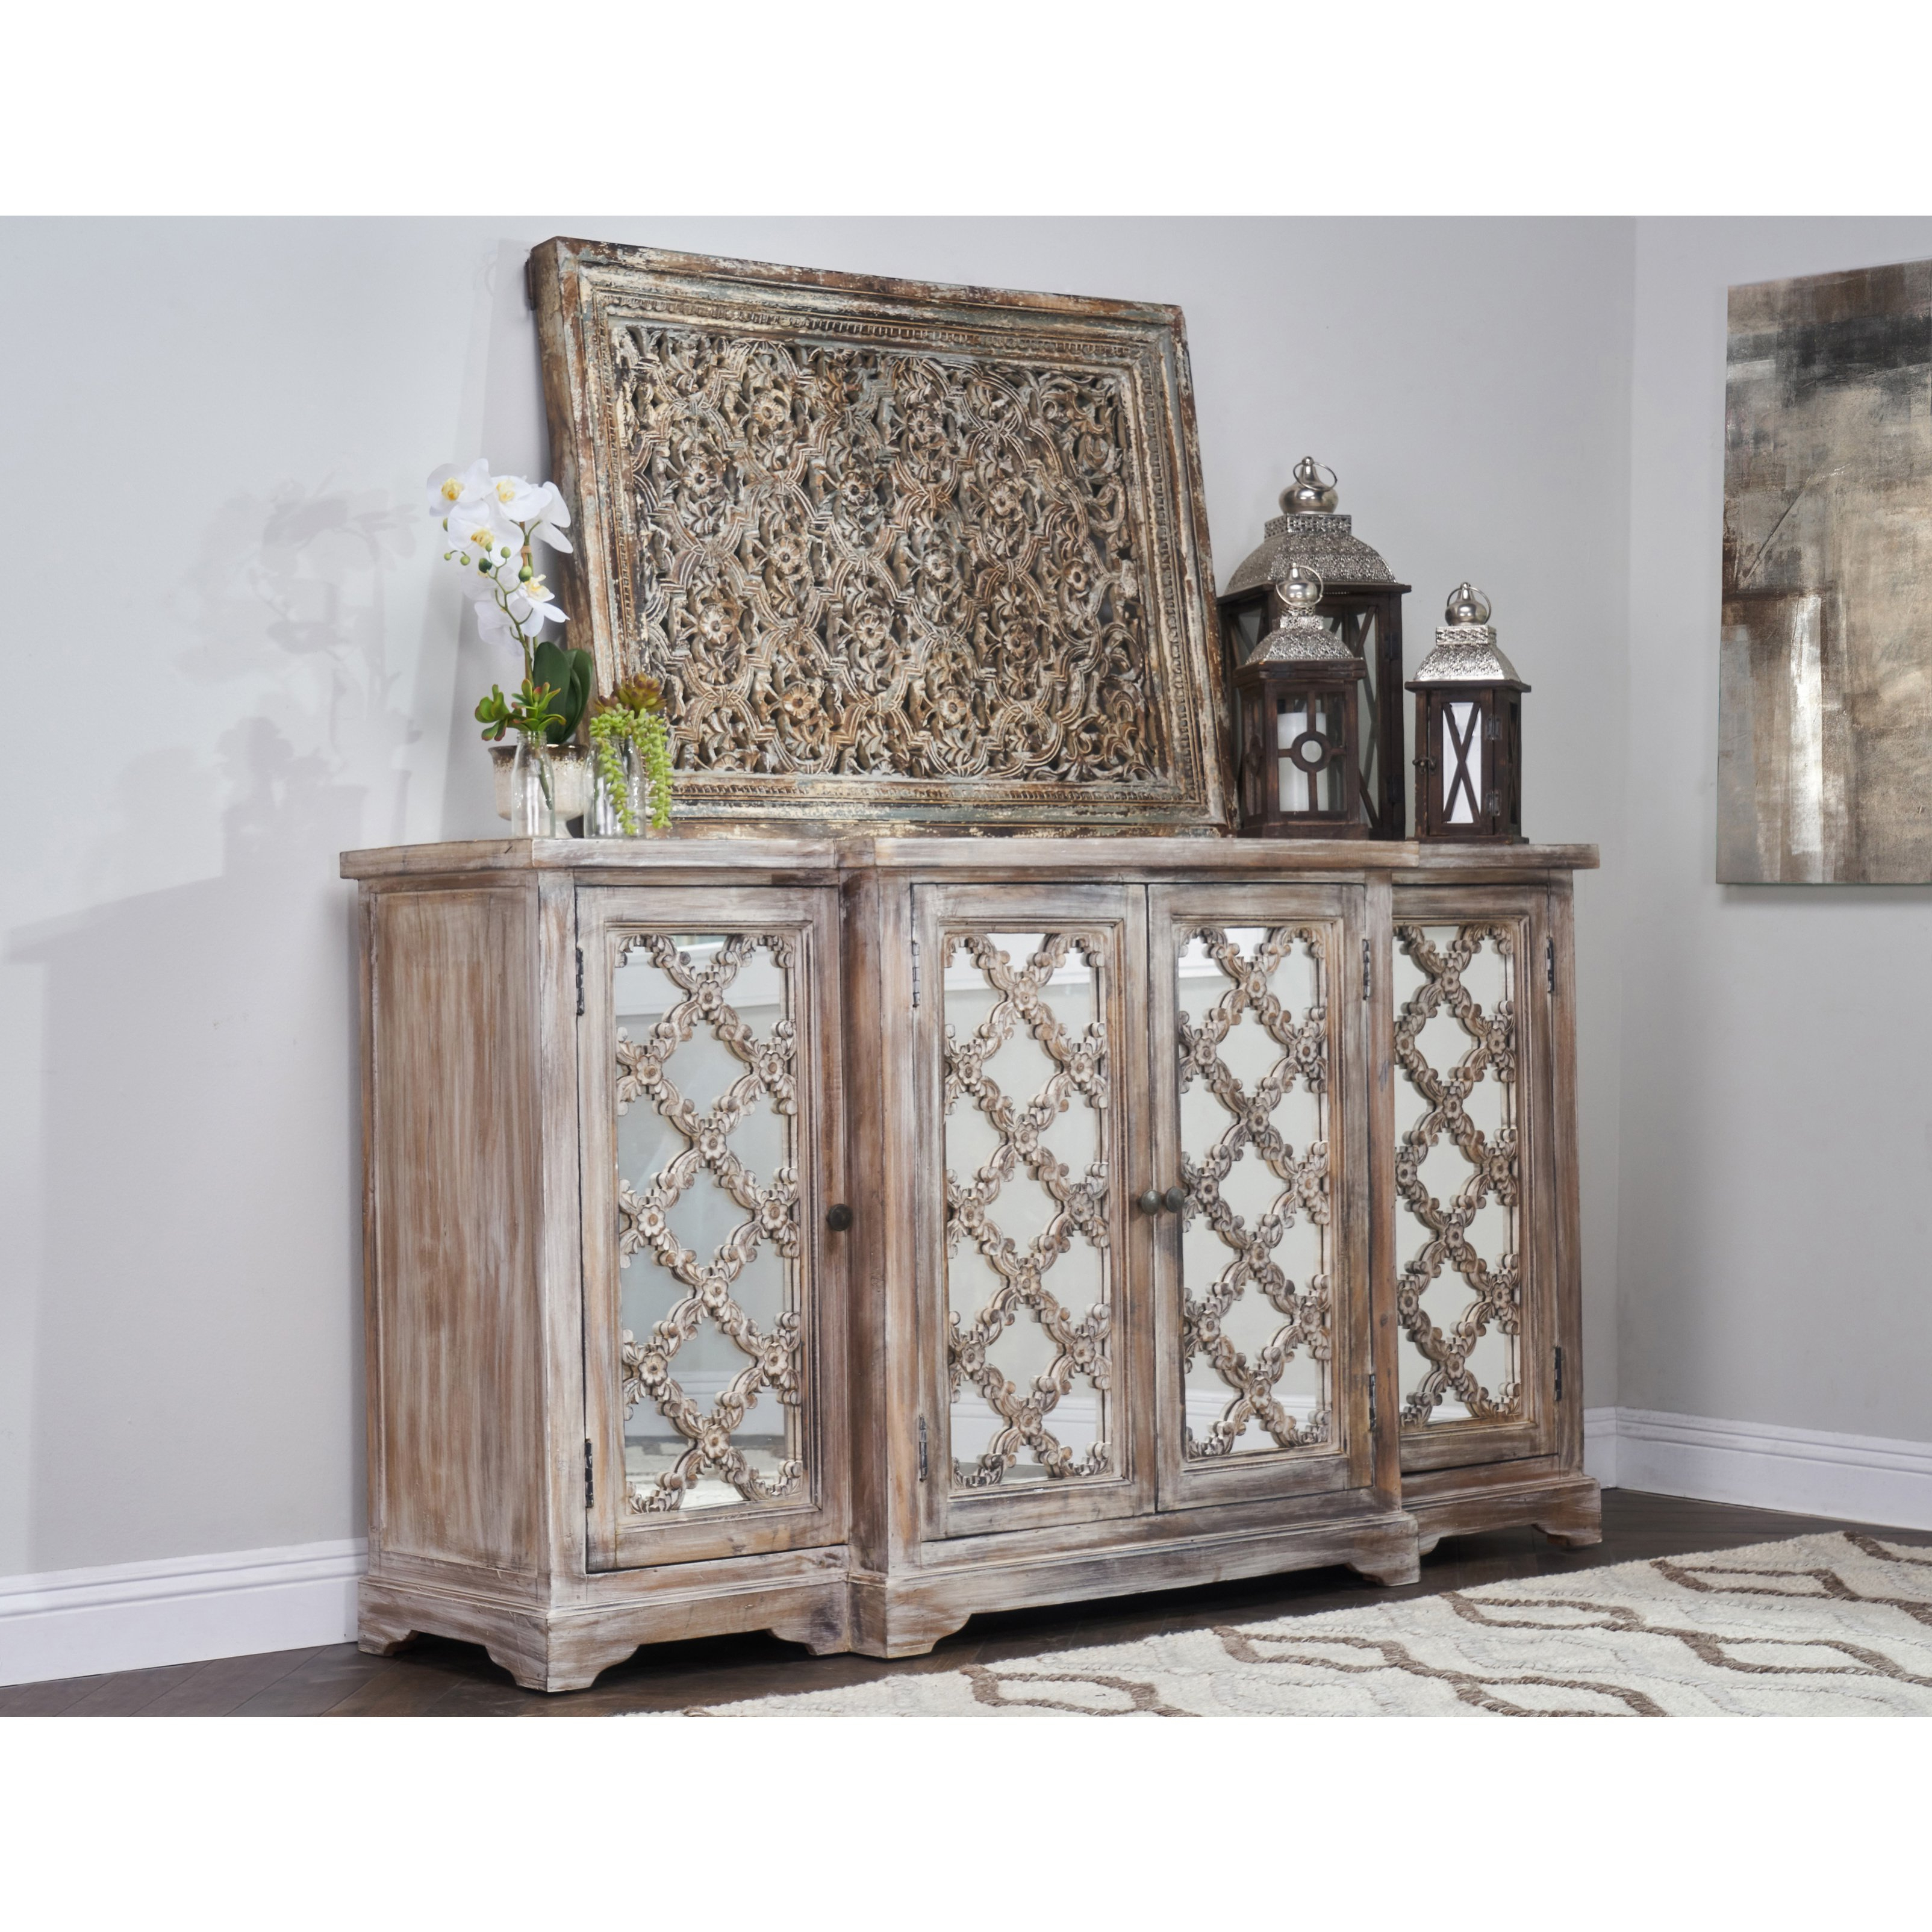 Shop Franklin Rustic Brown Wood Mirrored 71 Inch Sideboardkosas Throughout Most Recent Aged Mirrored 2 Door Sideboards (View 4 of 20)